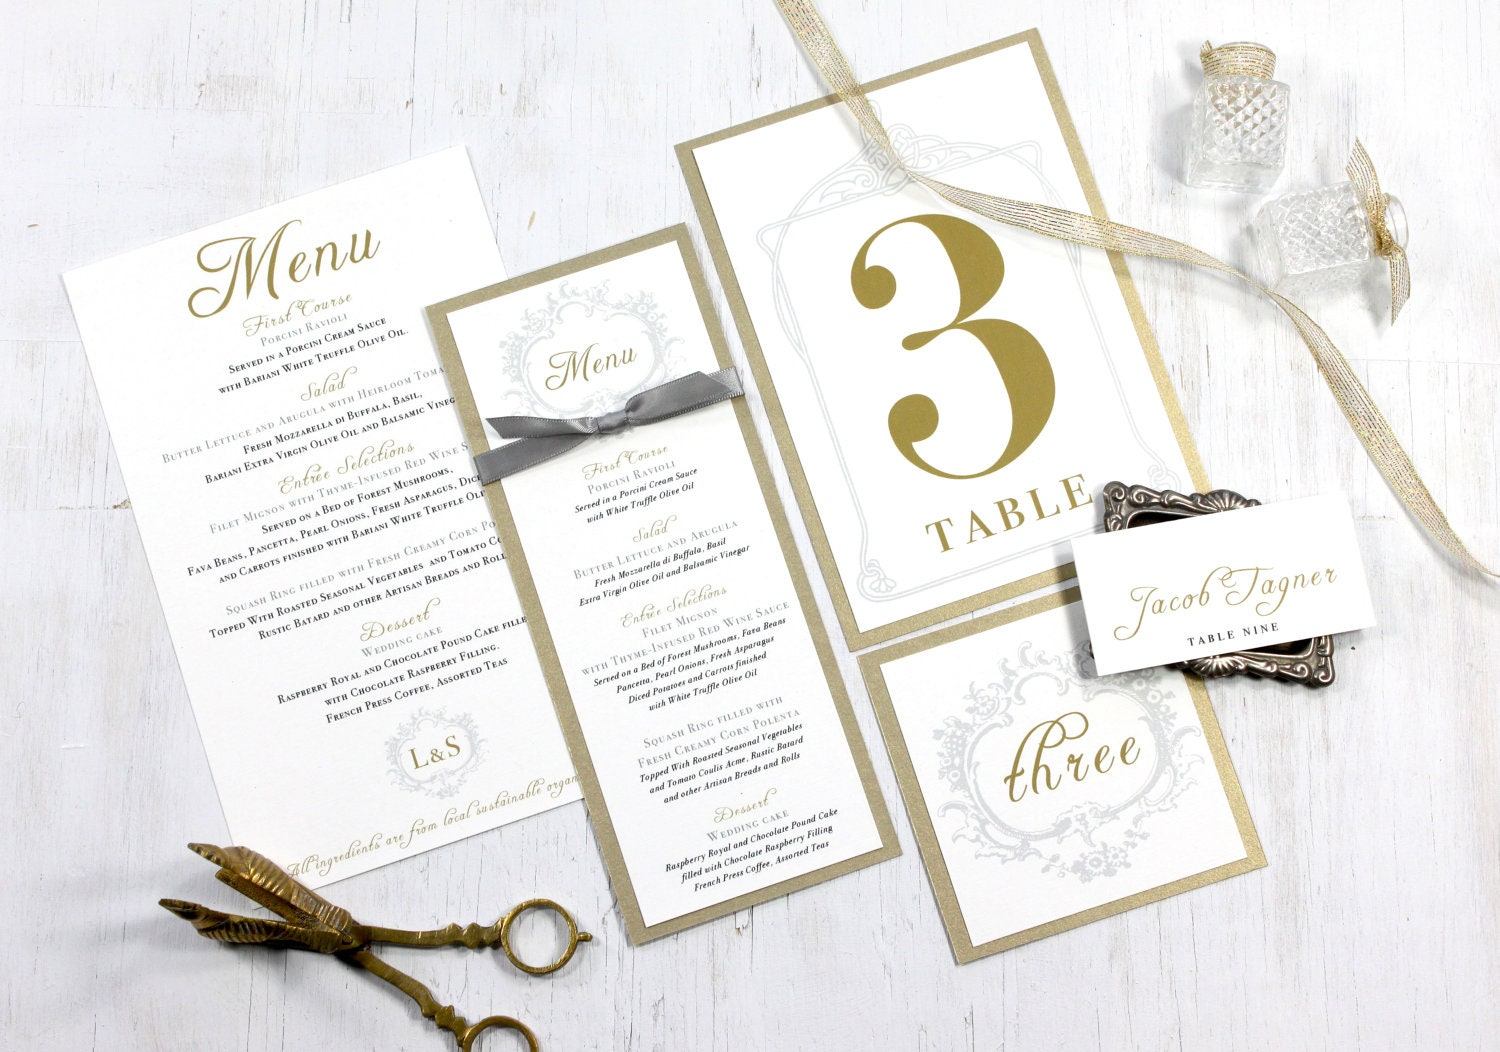 Gold Menu Cards Wedding Place Cards Elegant Wedding Table